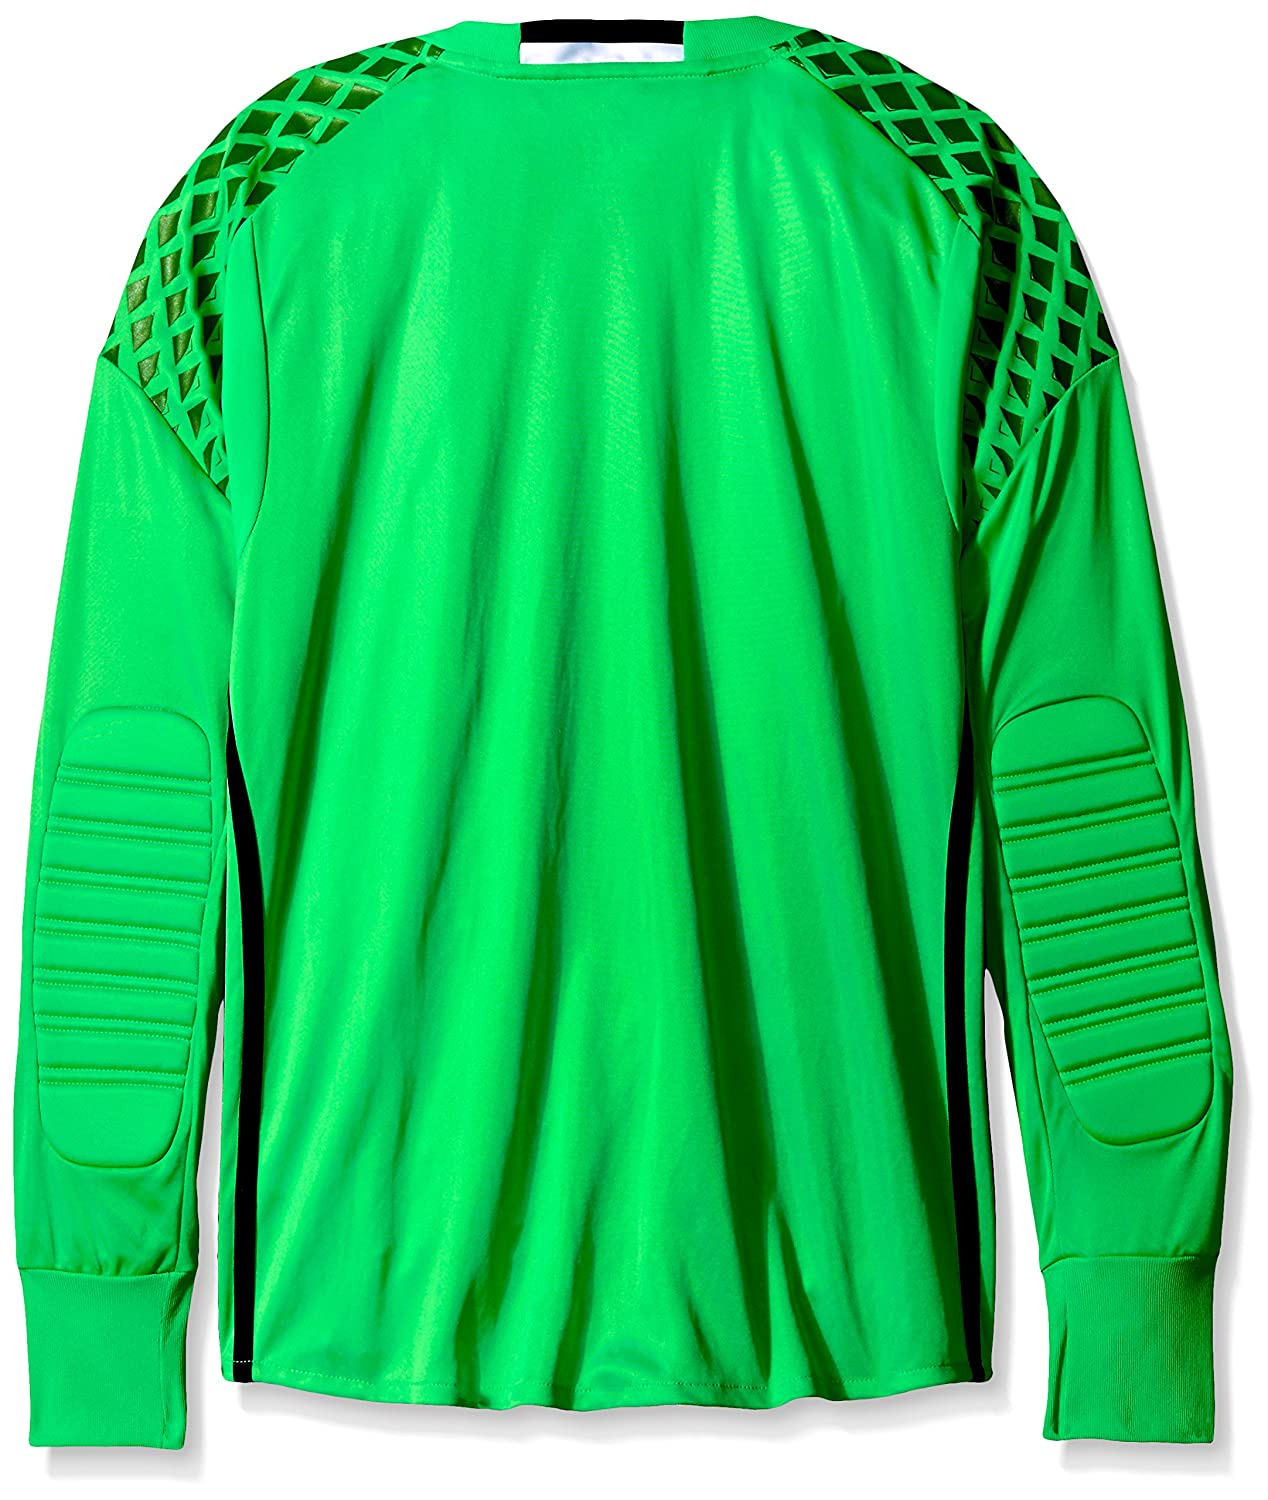 4d499e7b502 Amazon.com   adidas Performance Youth Onore 16 Goalkeeping Jersey ...